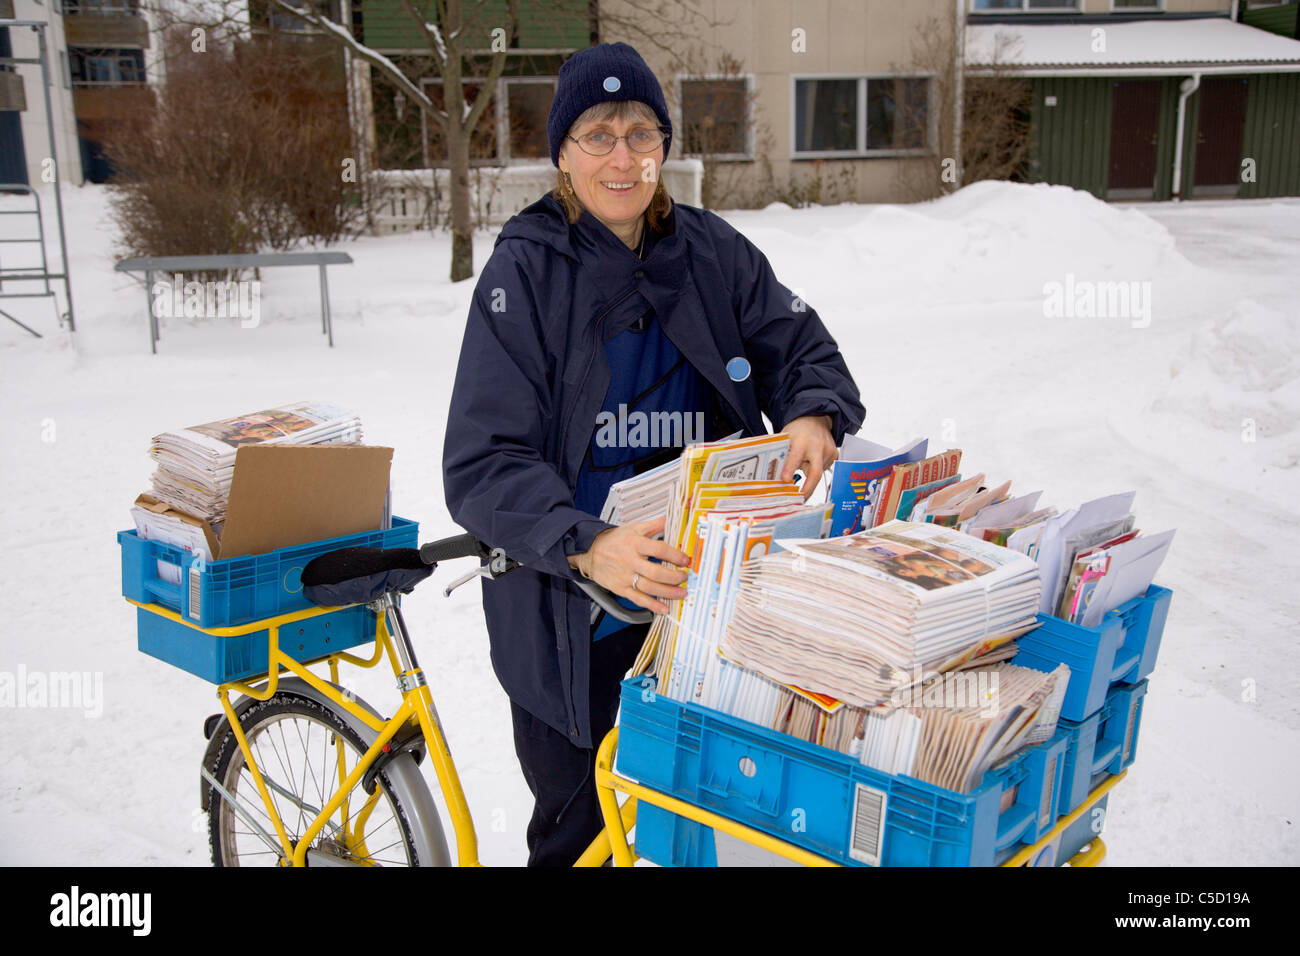 Cycle Of Mails Stockfotos & Cycle Of Mails Bilder - Alamy